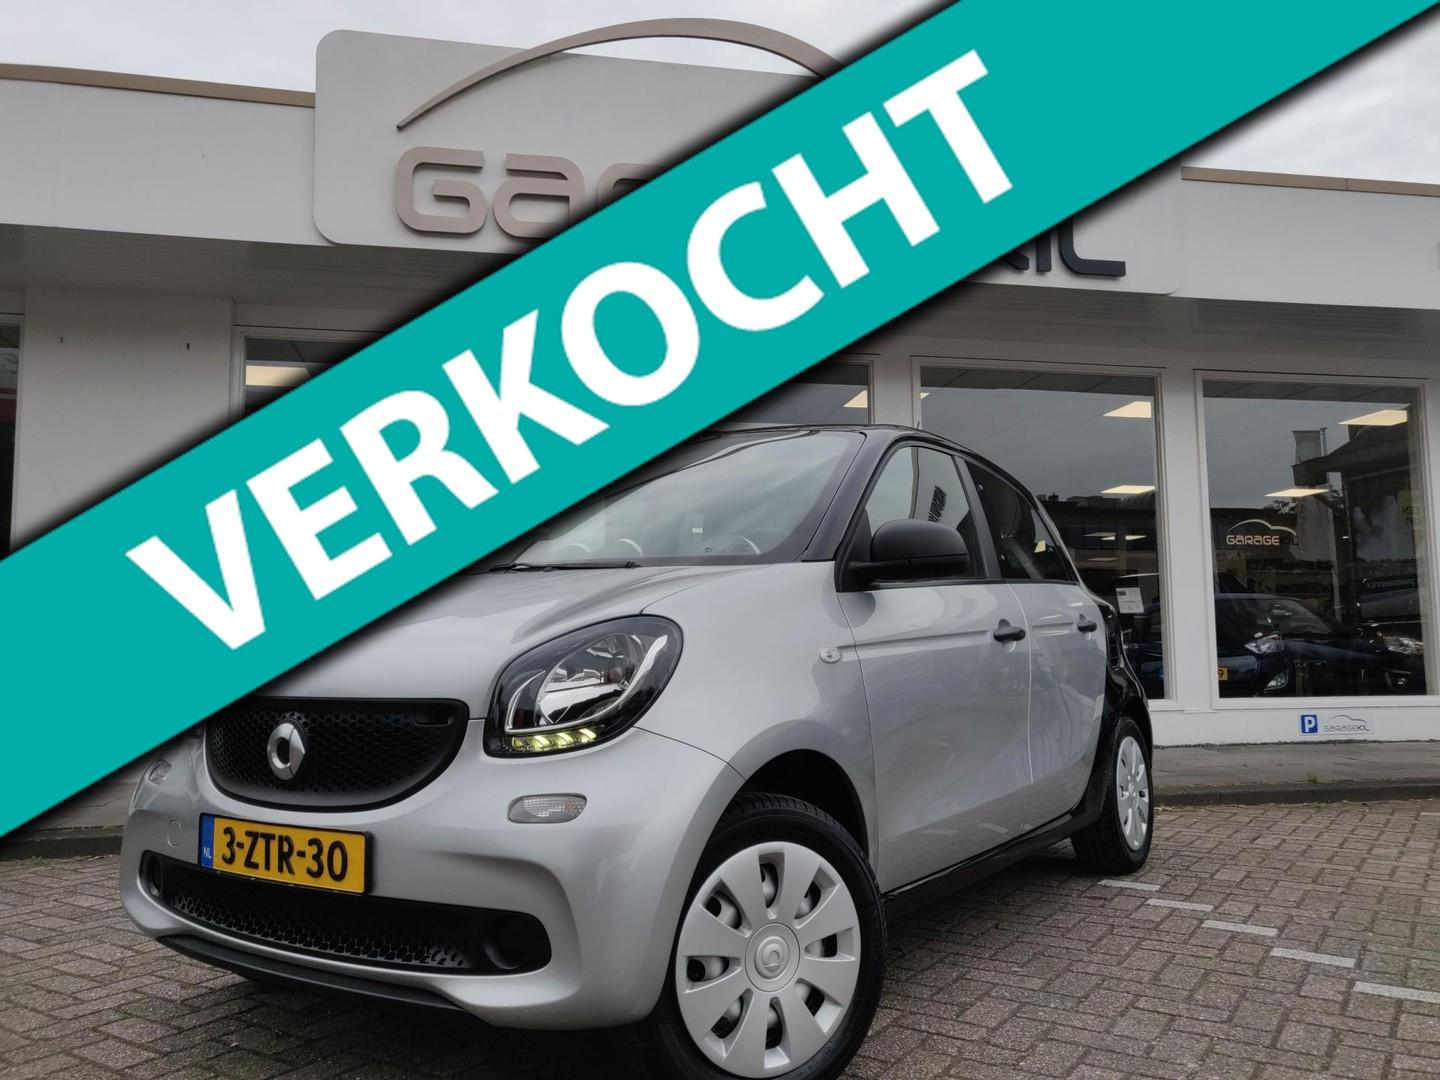 Smart Forfour 1.0 essential edition org.nl